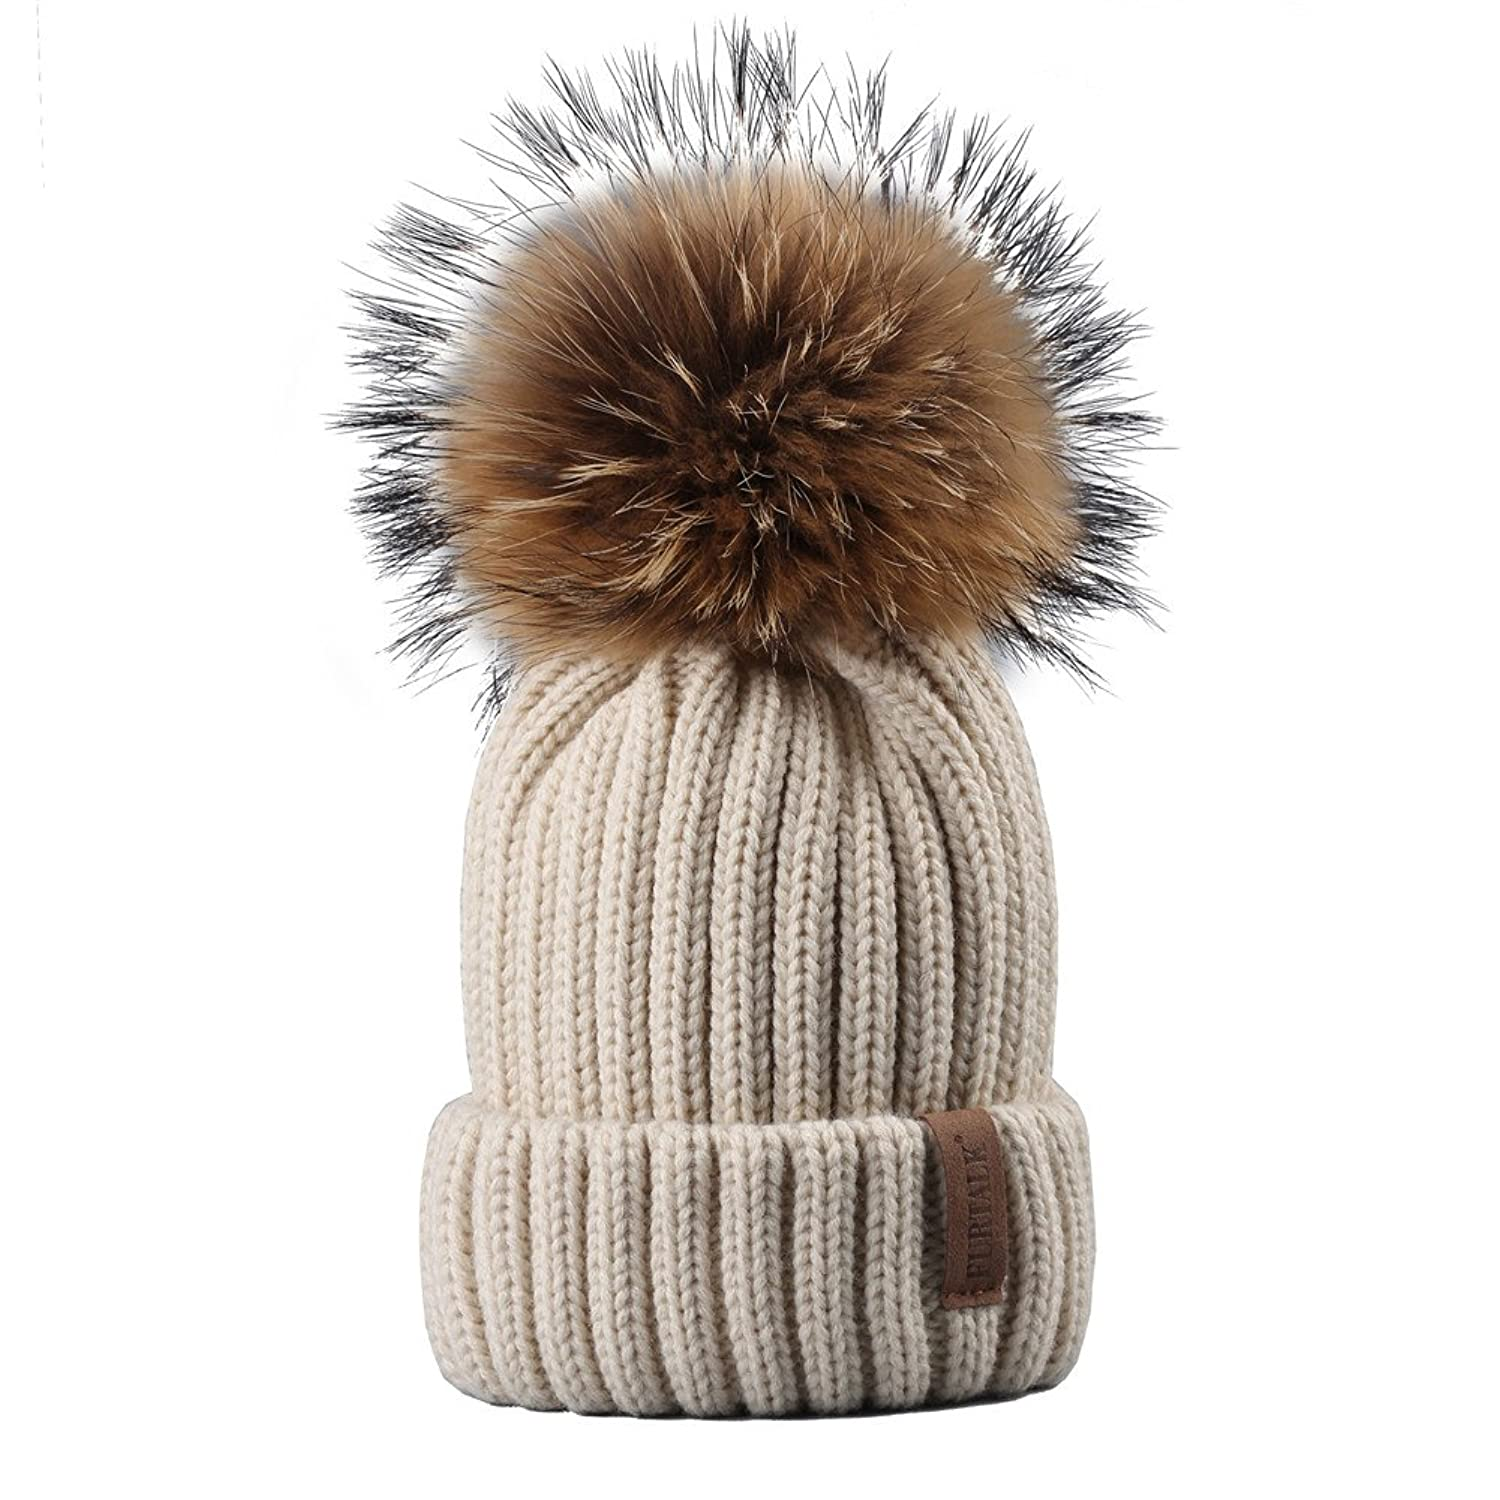 Attractive Amazon.com: Kids Winter Pom Pom Hat - Knitted Beanie Hats With  UB99